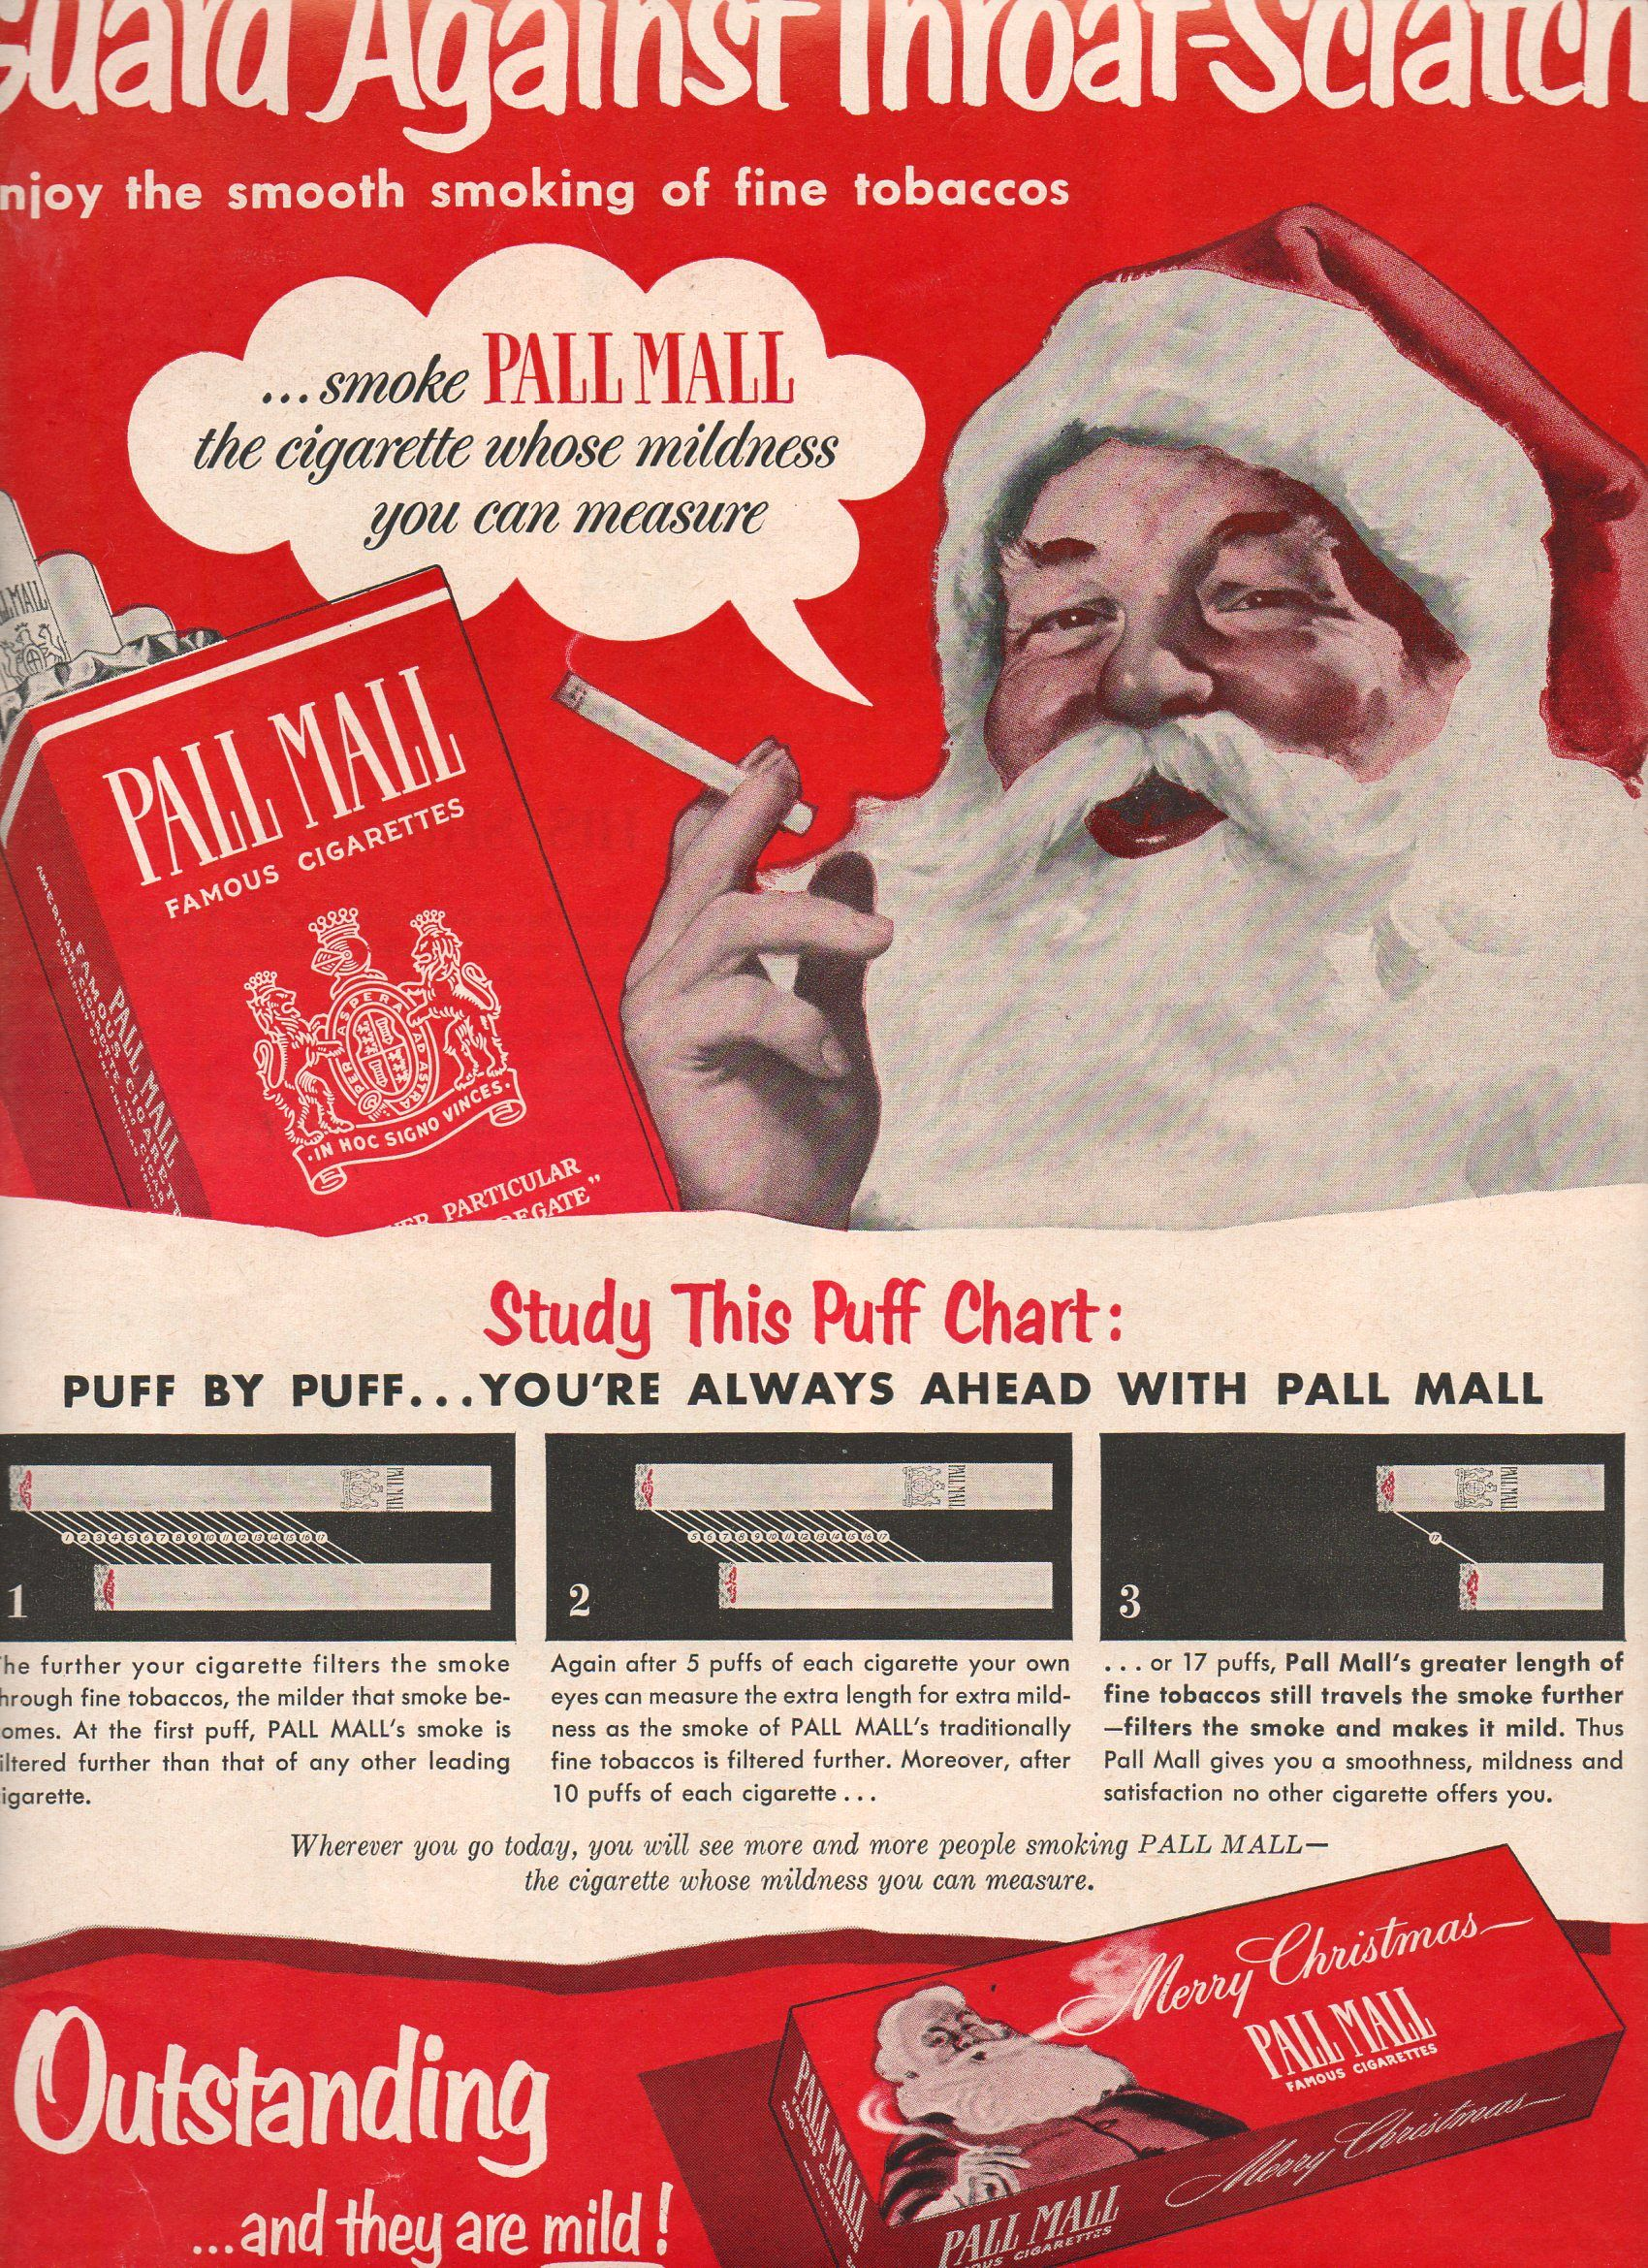 Guard Against Scratchy Throat, Santa! Bring Us Pall Malls!